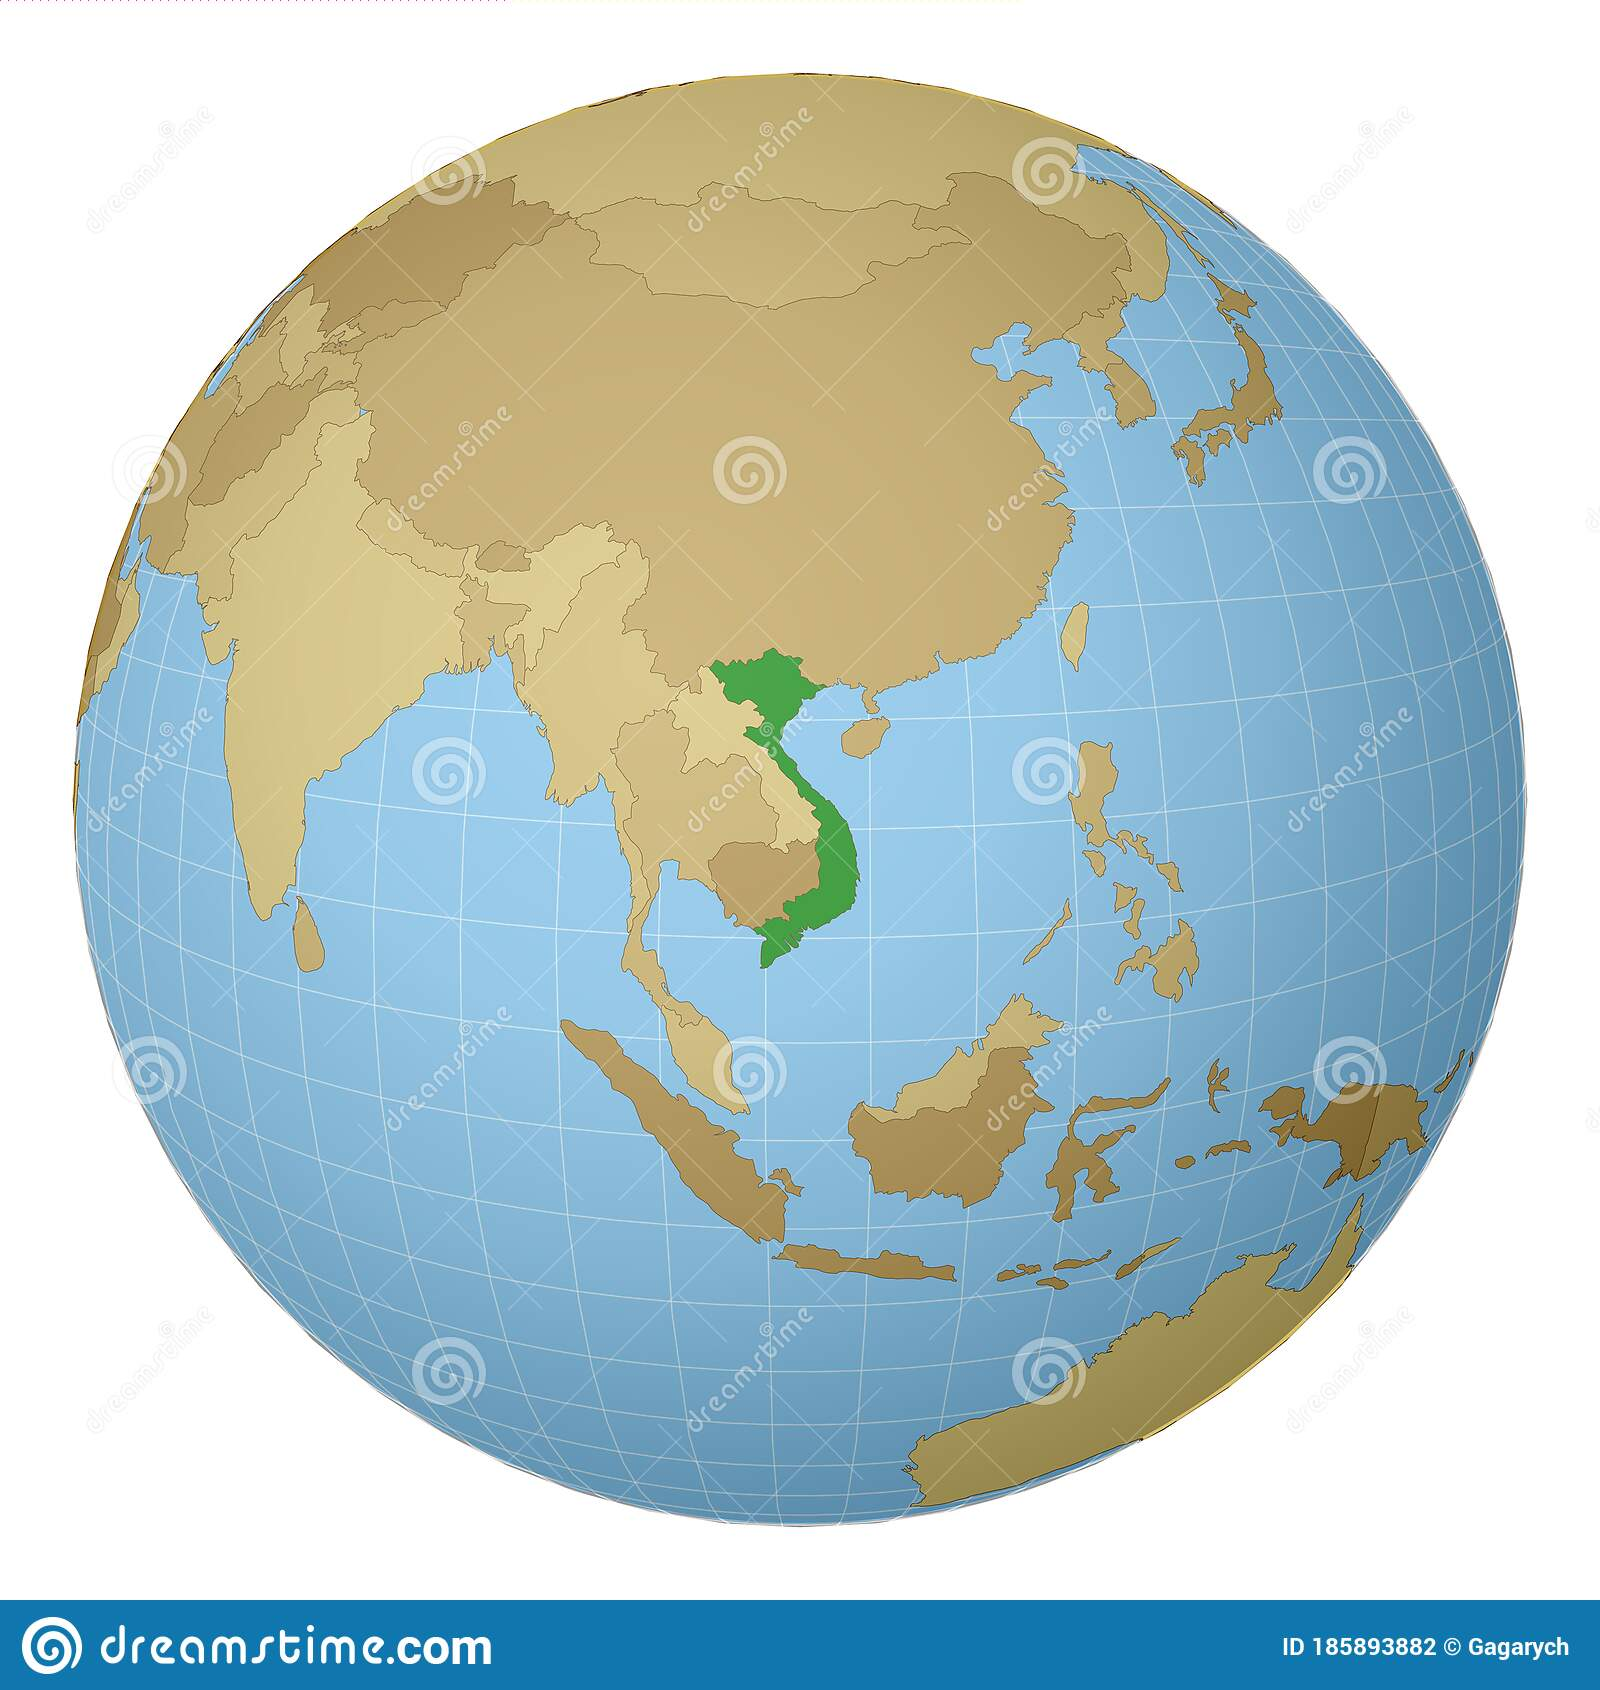 Globe Centered To Vietnam Stock Vector Illustration Of Landmark 185893882